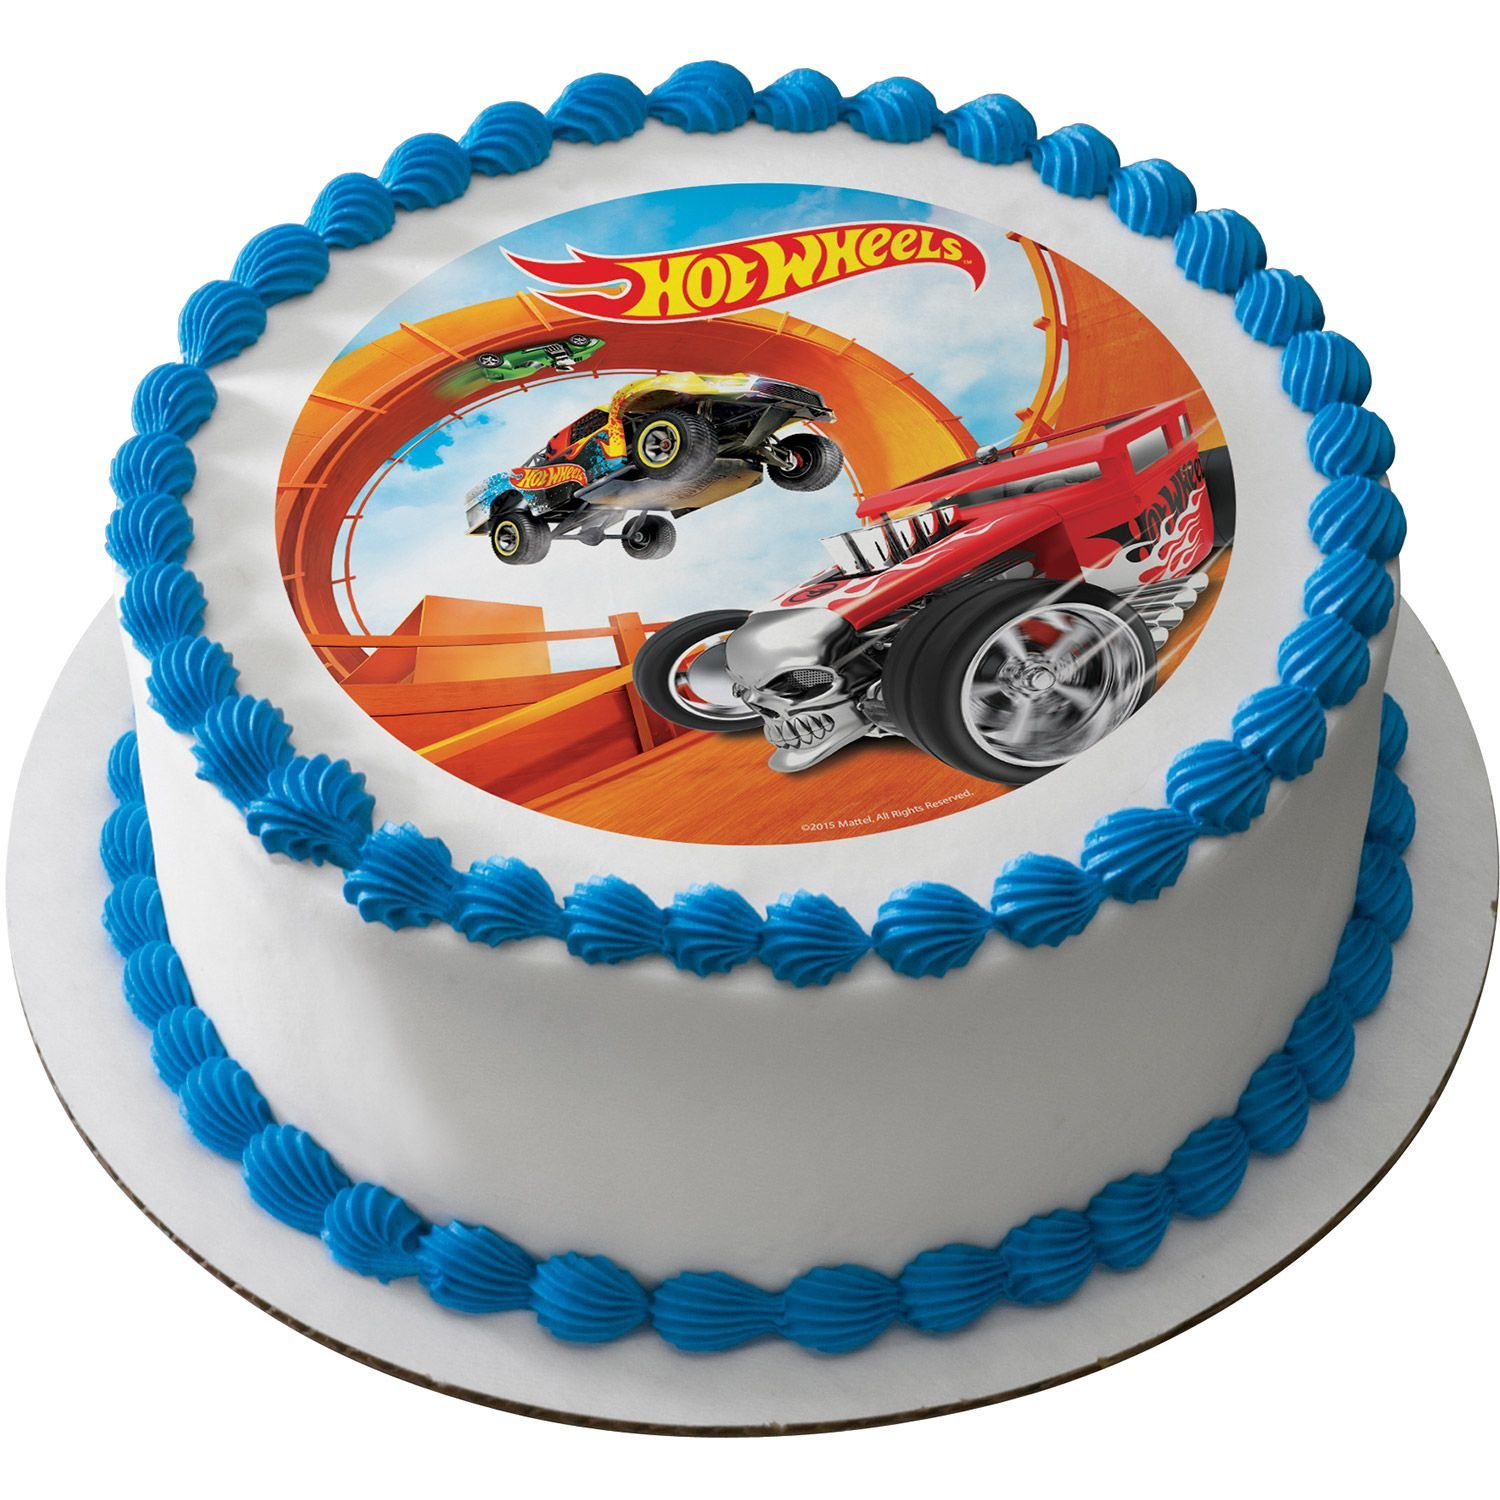 Astonishing Hot Wheels 7 5 Round Edible Cake Topper Cooking Kits Funny Birthday Cards Online Chimdamsfinfo